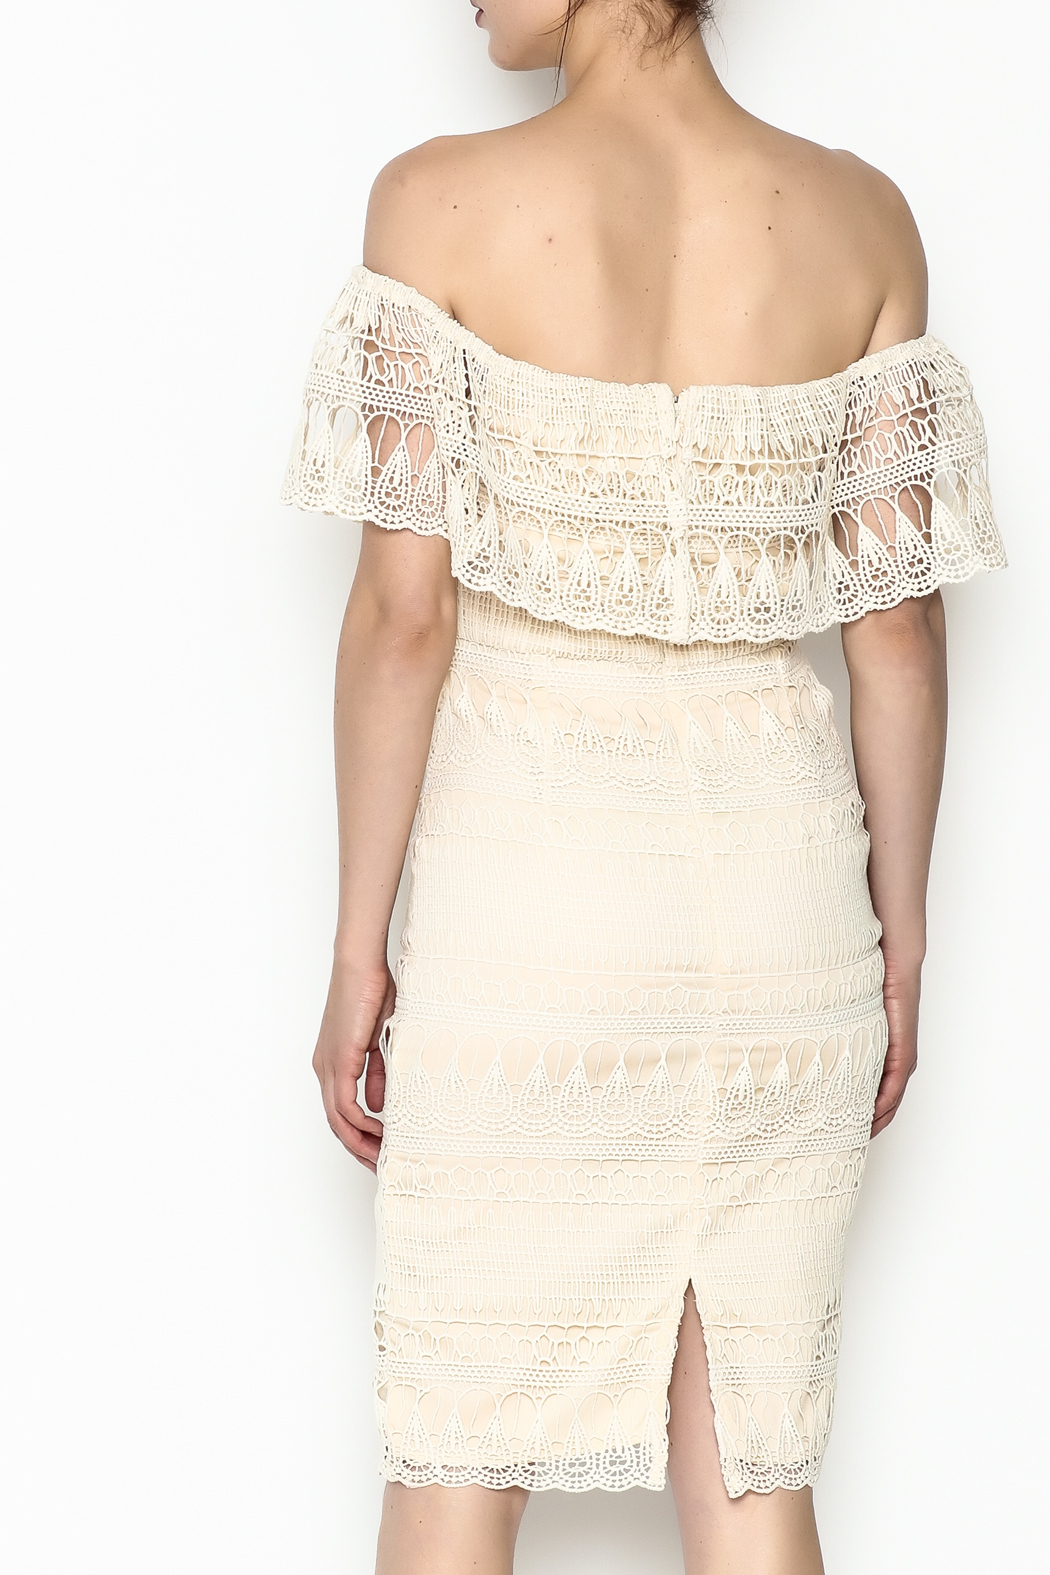 Champagne & Strawberry Cream Lace Dress - Back Cropped Image